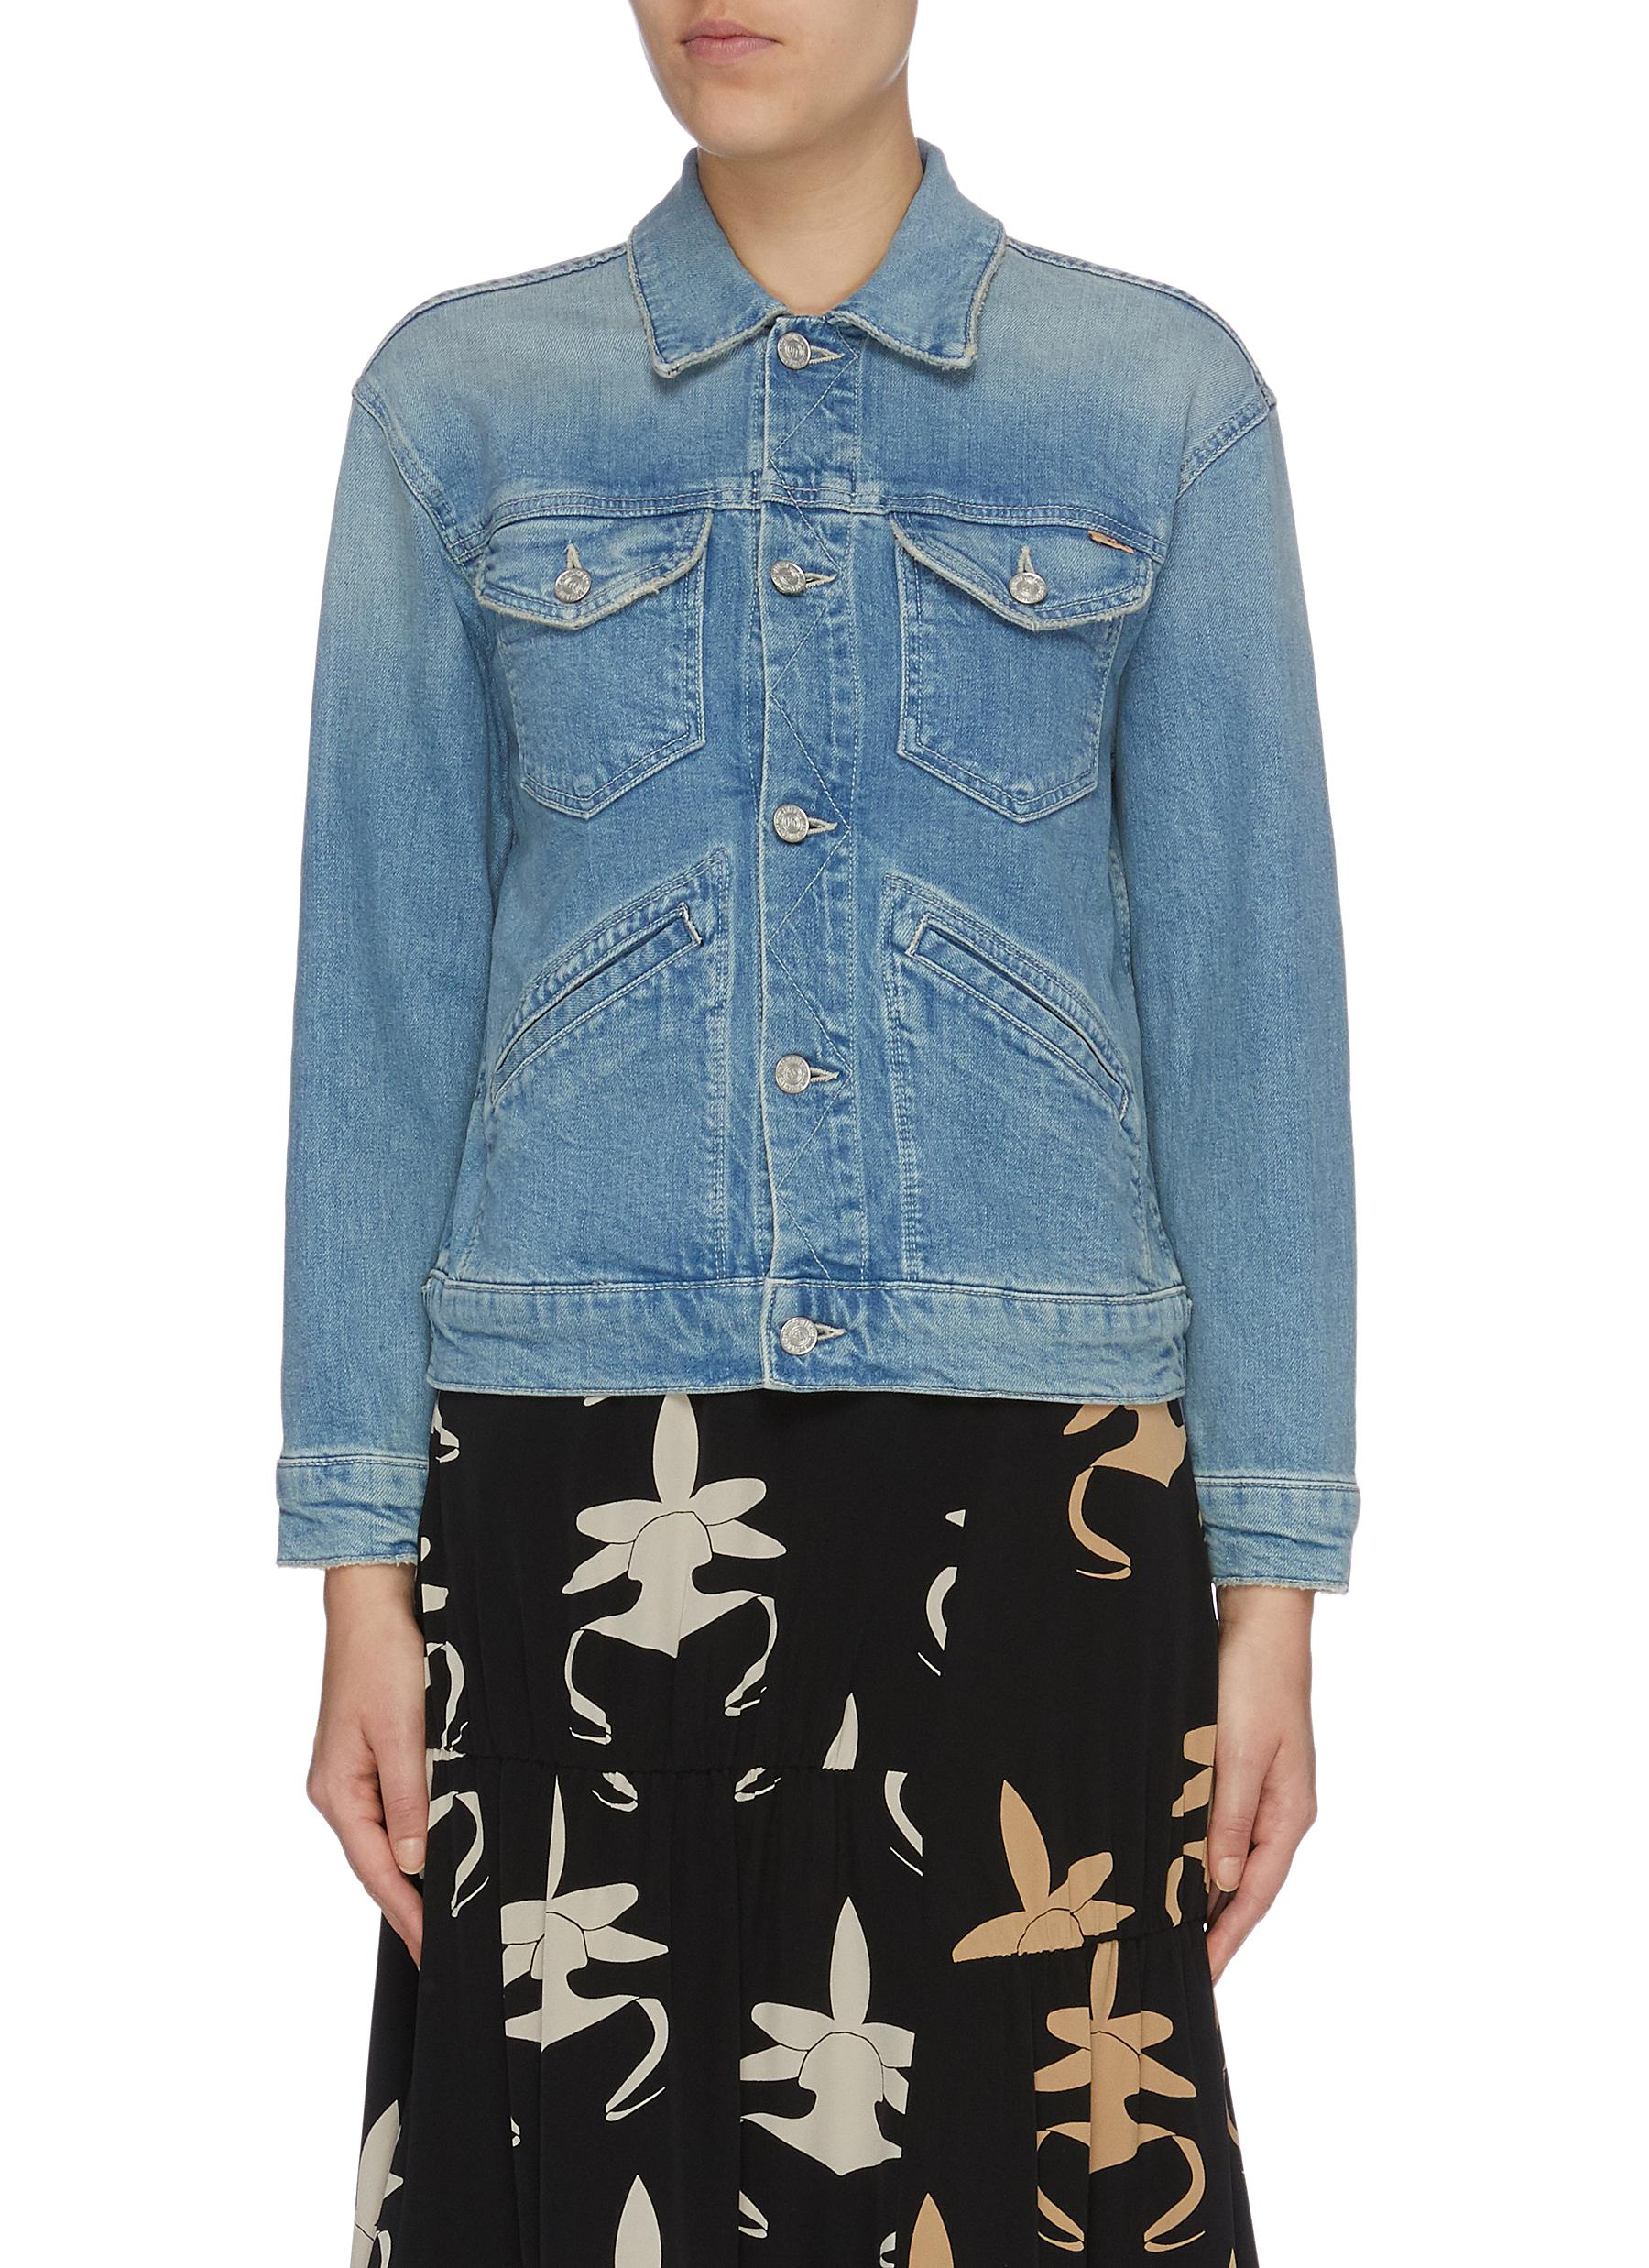 The Shrunken Mountain Drifter graphic embroidered denim jacket by Mother